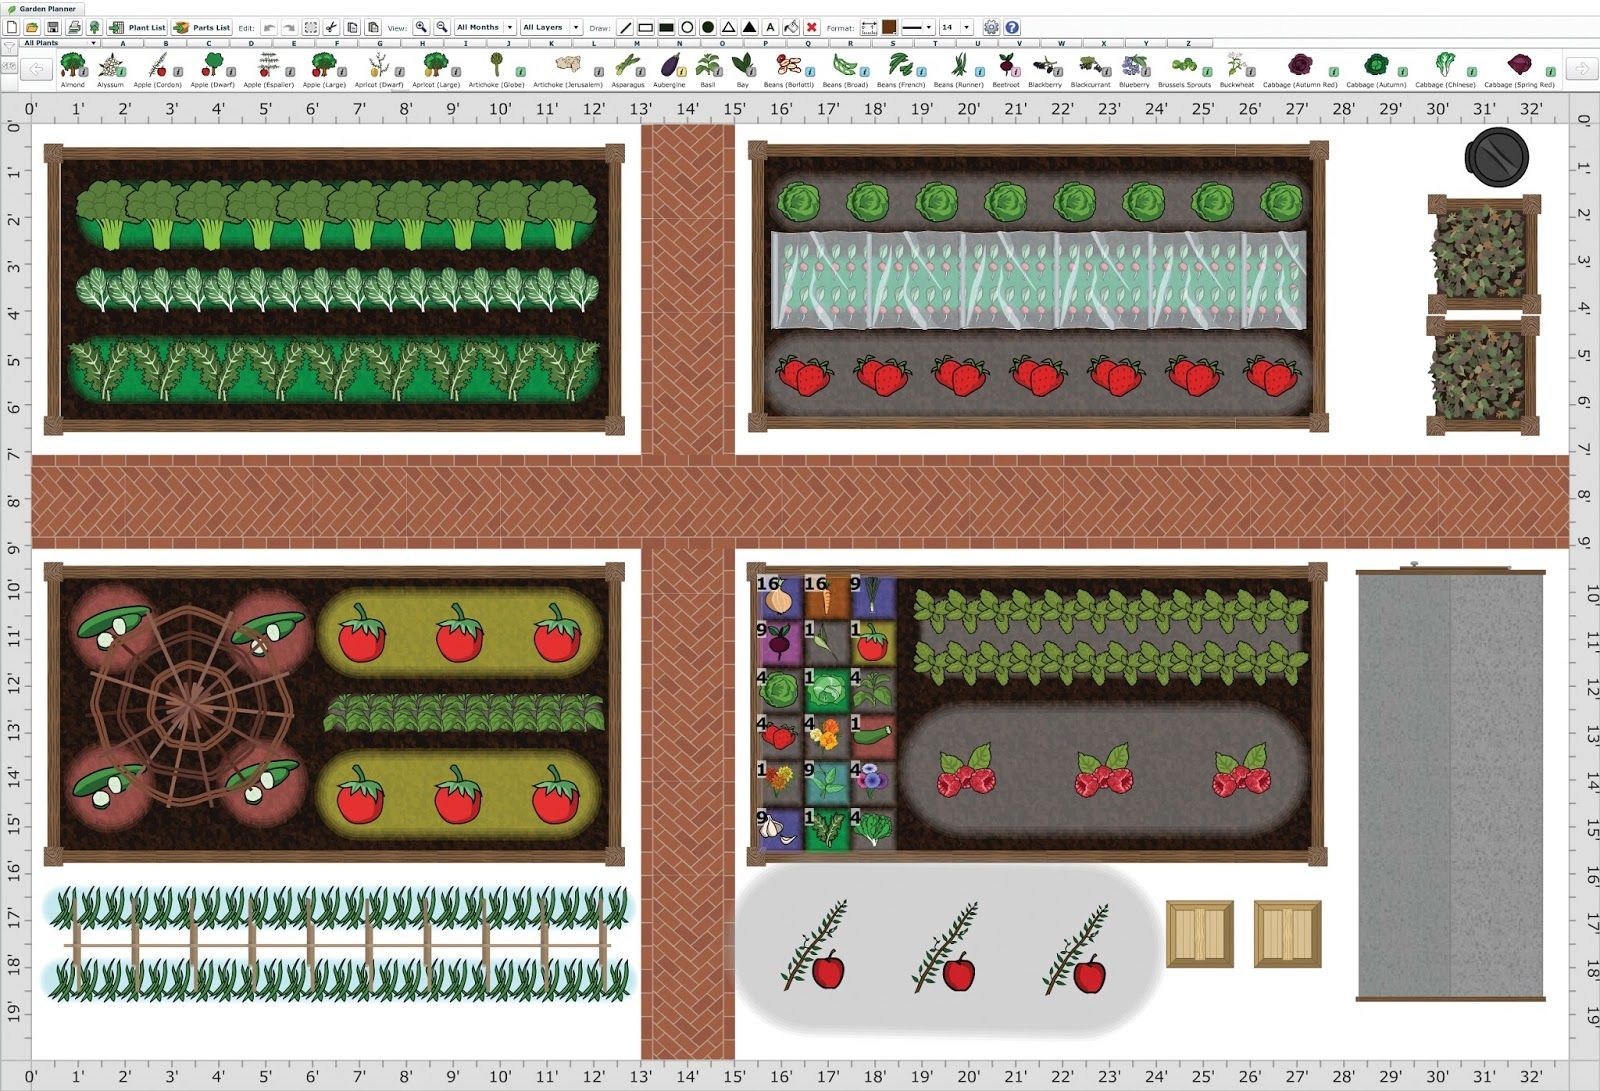 Mom Loves 2 Read Plan Implement And Track Your Gardening With